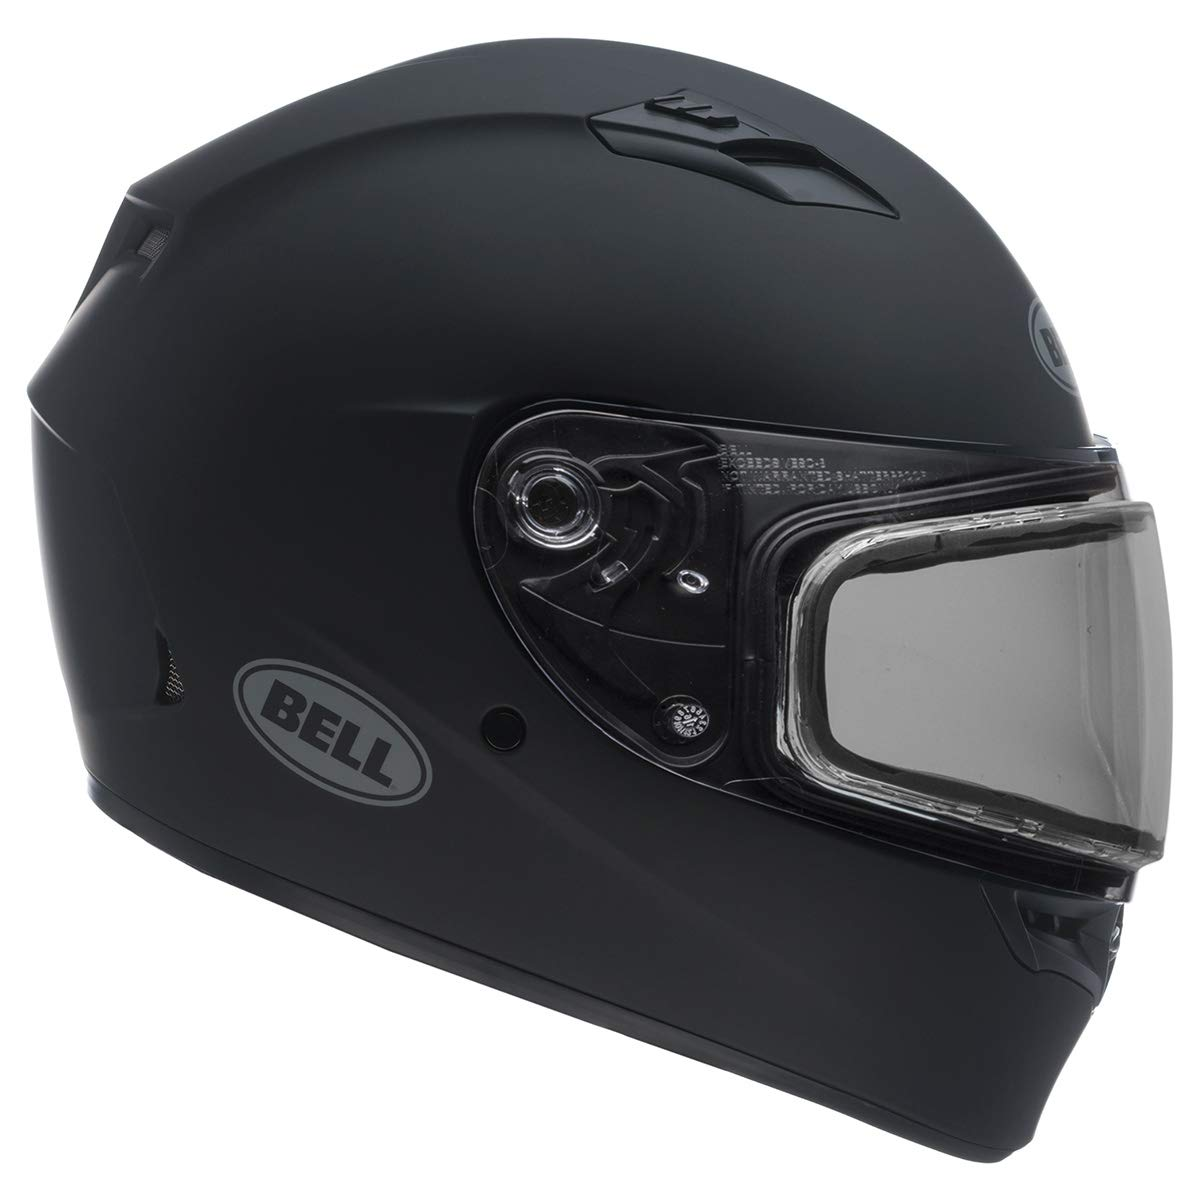 Bell Unisex-Adult Full Face Helmet (Reflective Green, Medium) (Qualifier Snow Dual Shield D.O.T Certified Snow Off Road) 7076046